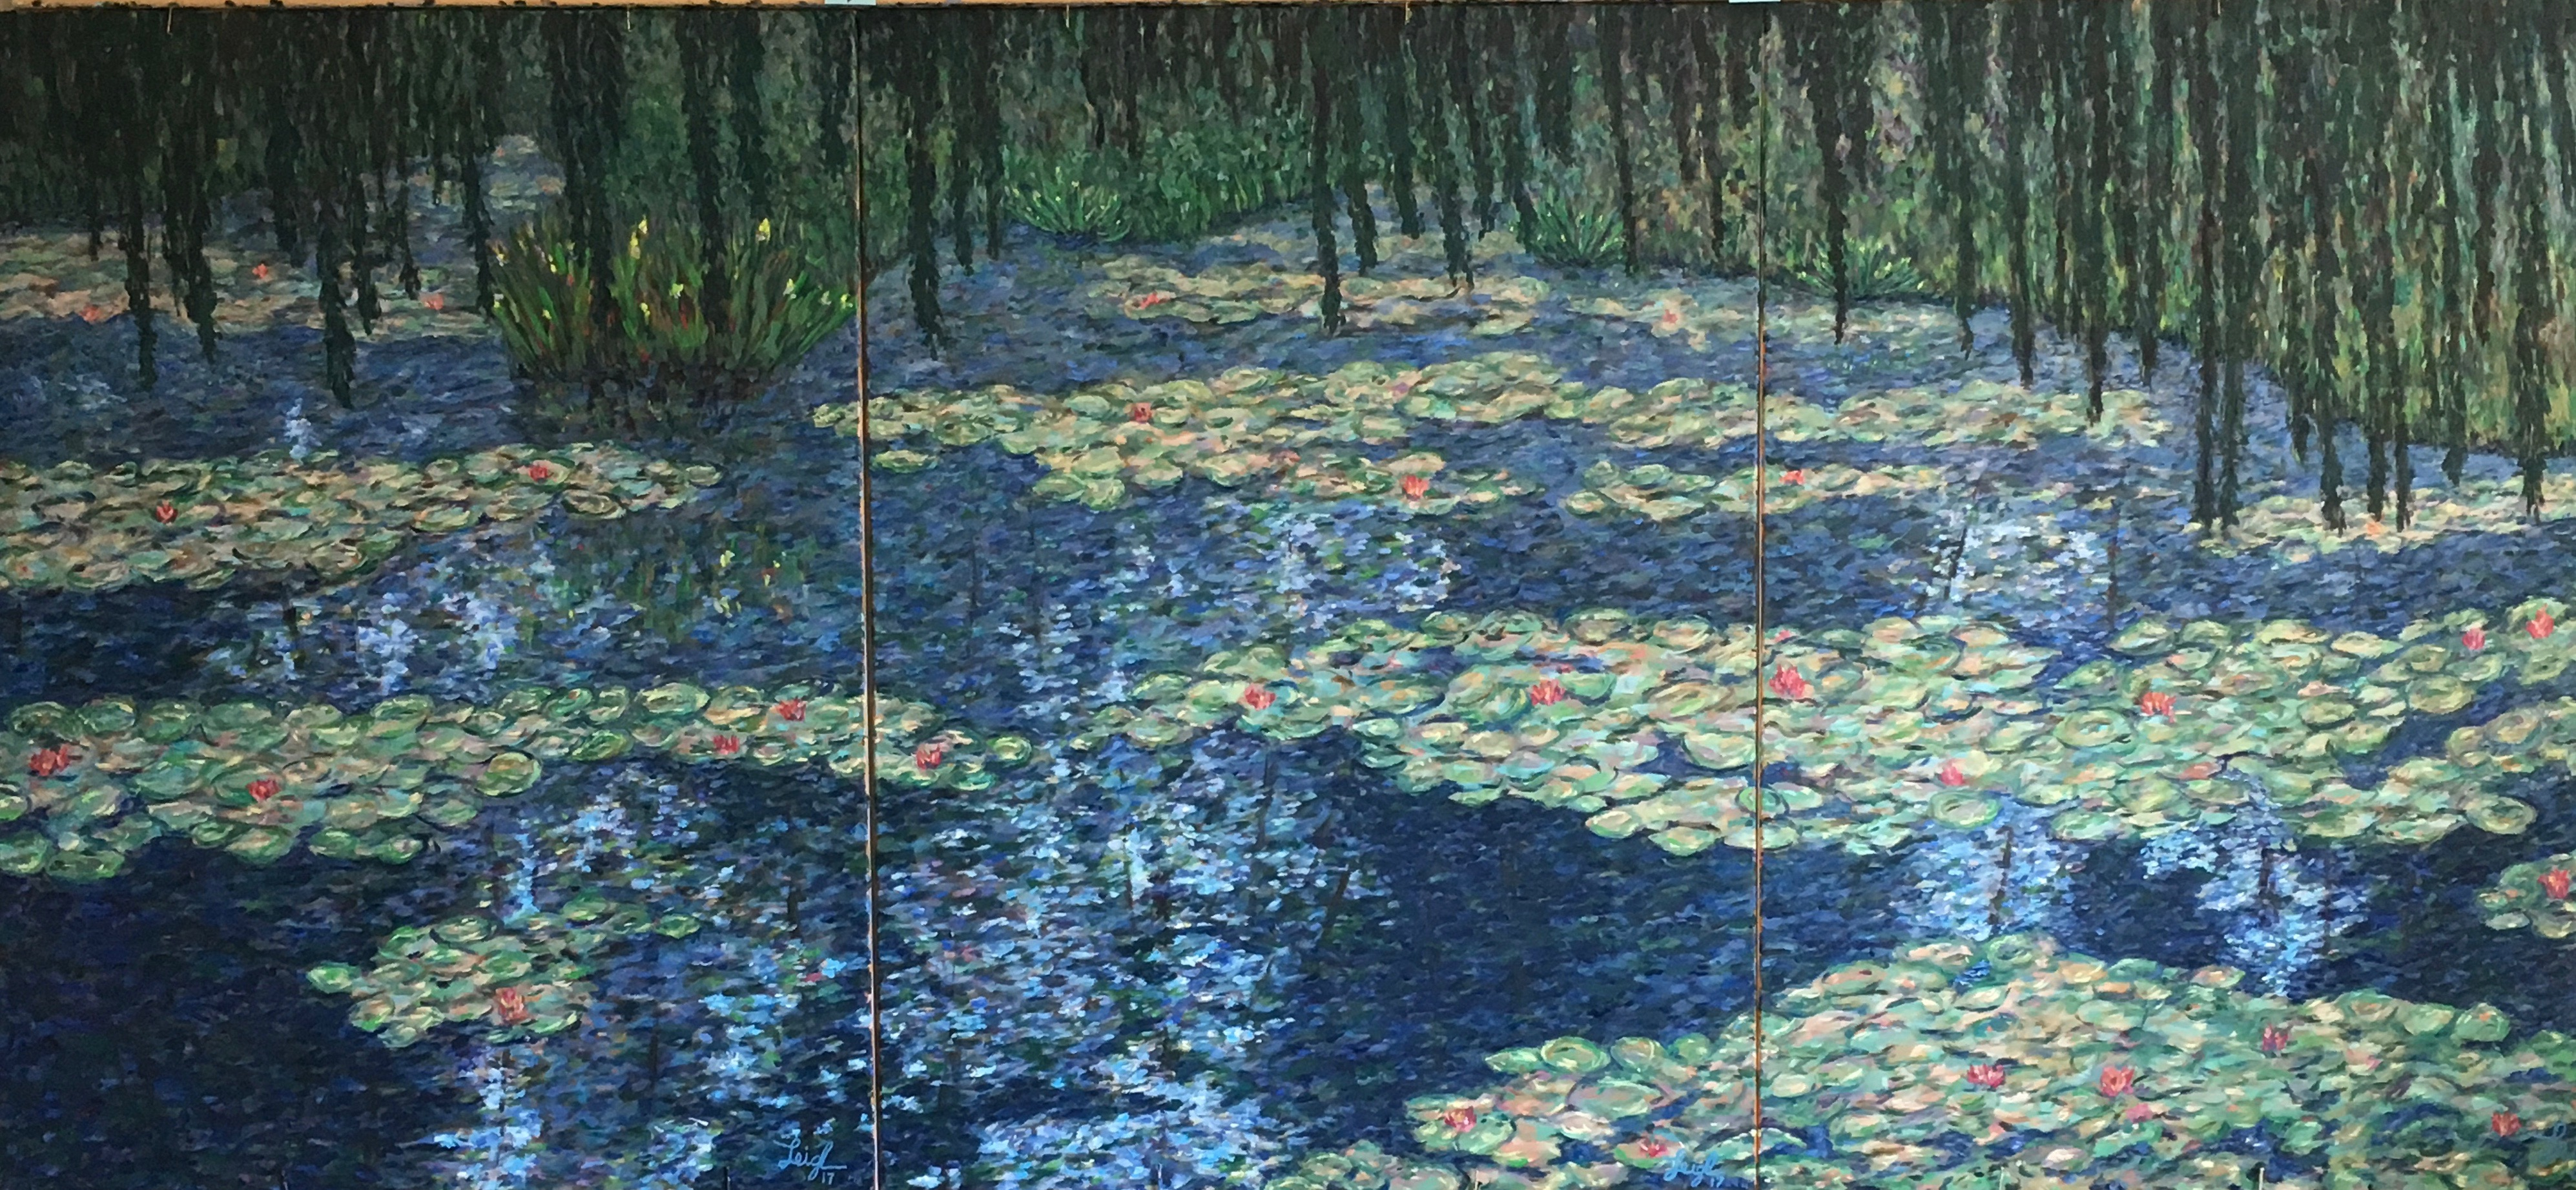 Water Lilies Triptych  ~   Aaron Null, San Diego, CA  2017  •  108 x 48